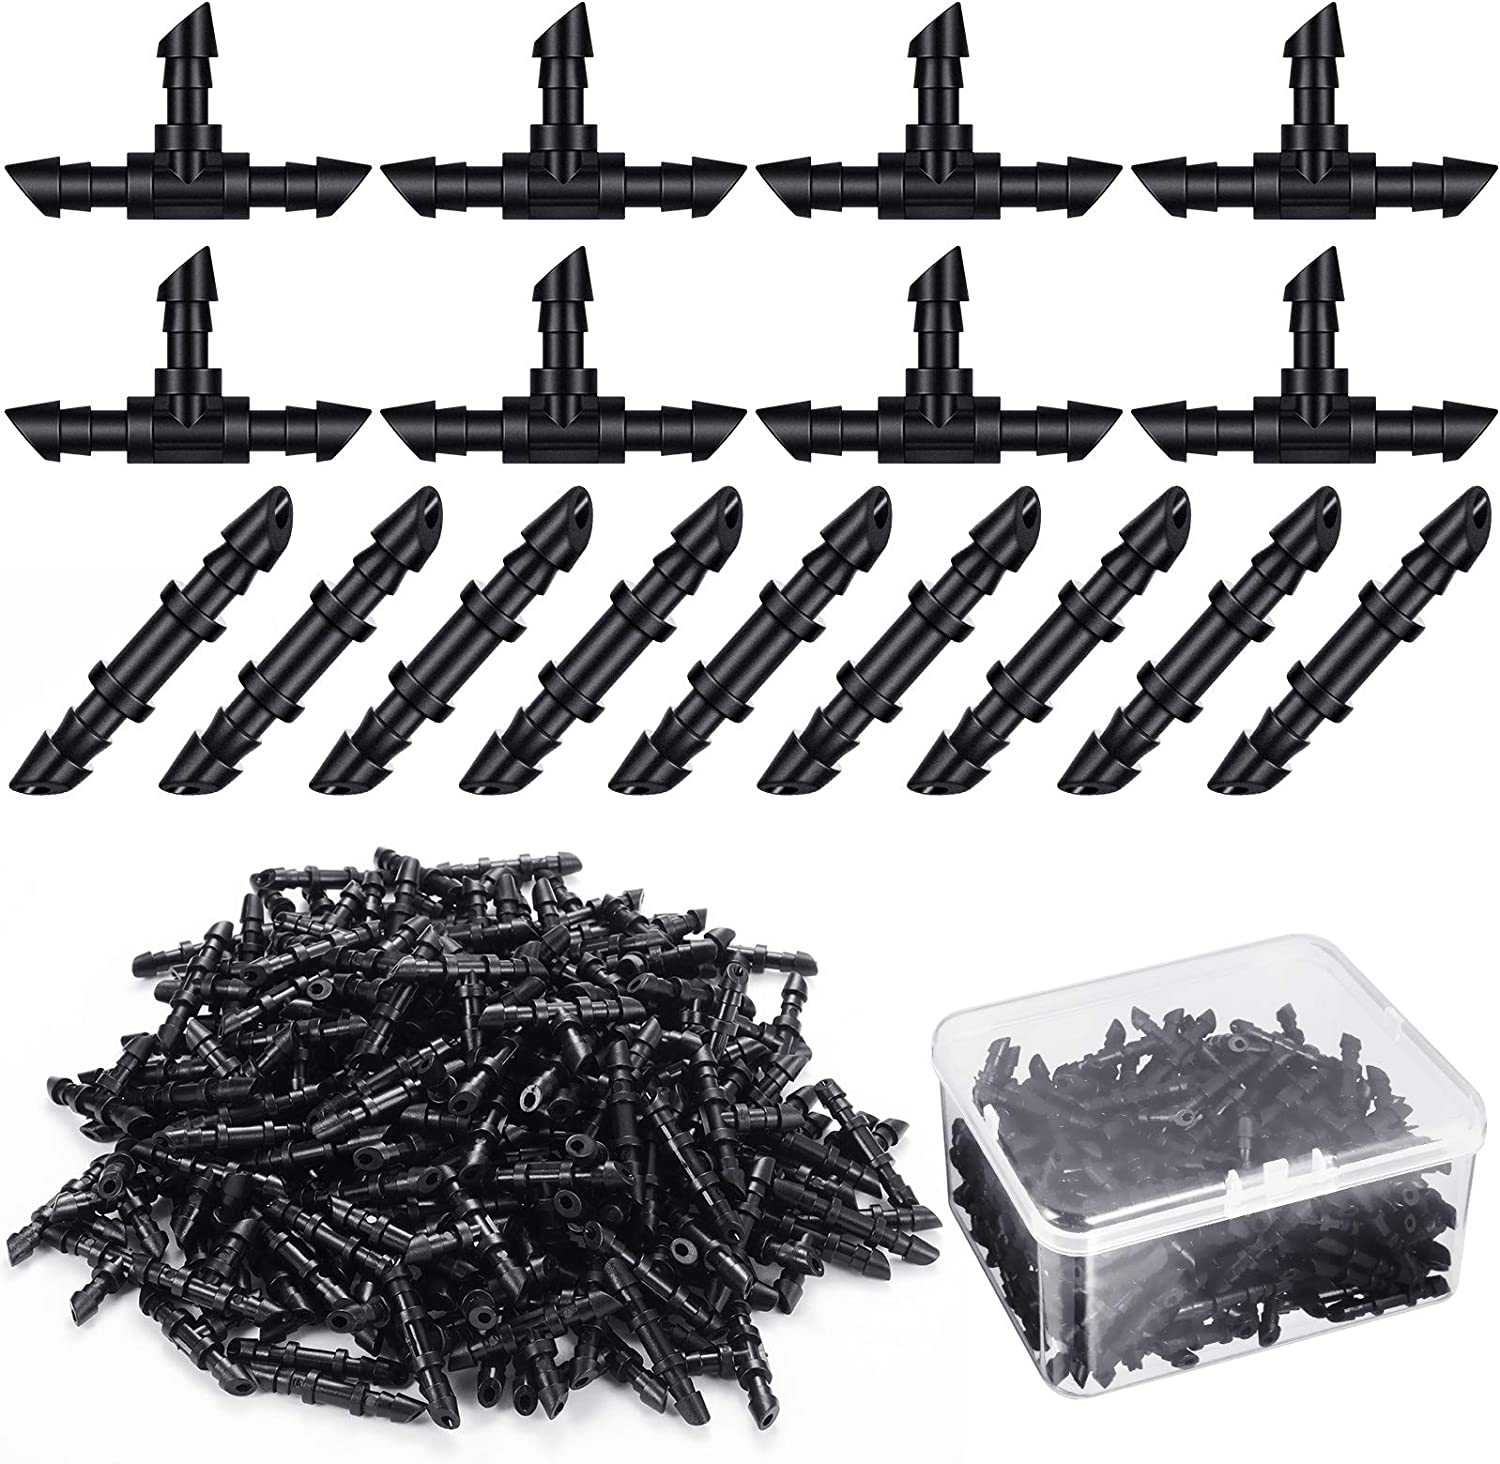 Zonon 200 Pieces Drip Irrigation Fittings Kit with Plastic Box, 100 Barbed Couplings 100 Tees Fittings Barbed Connectors for 1/4 Inch Tubing Garden Lawn Drip or Sprinkler Systems, Black